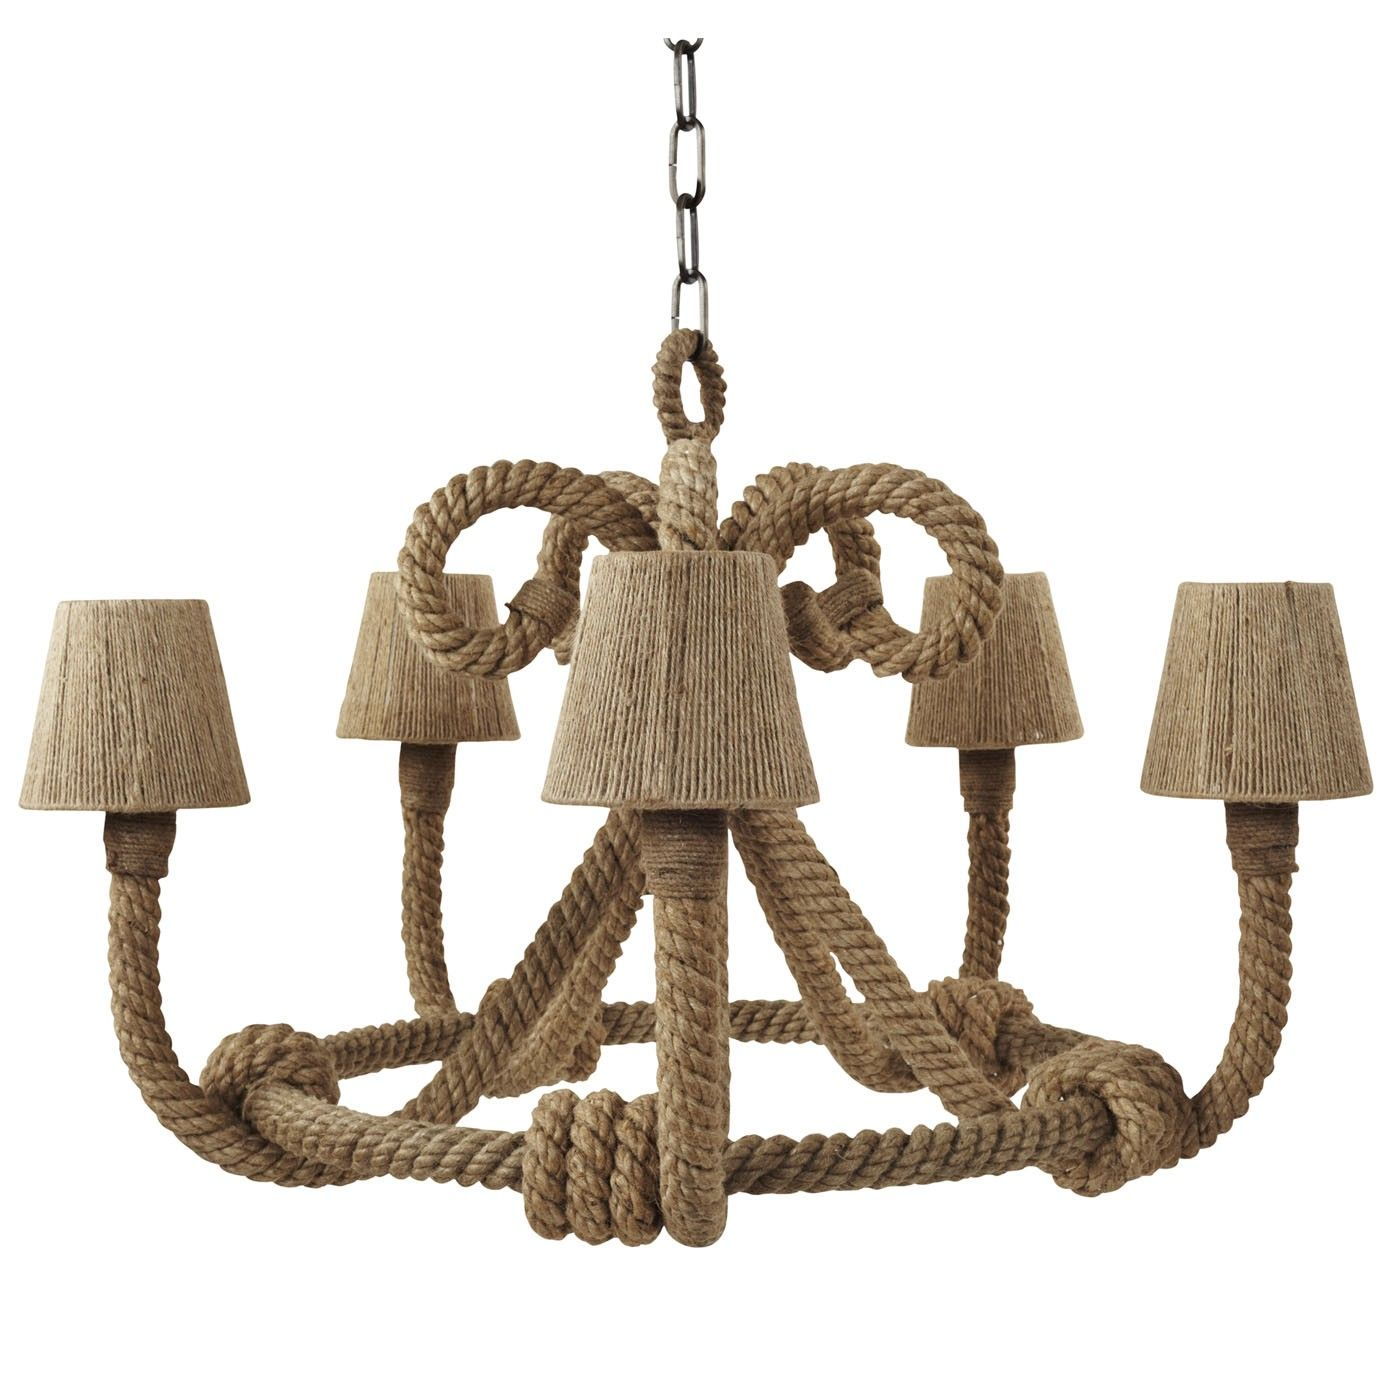 Nautique chandelier by Jamie Young pany